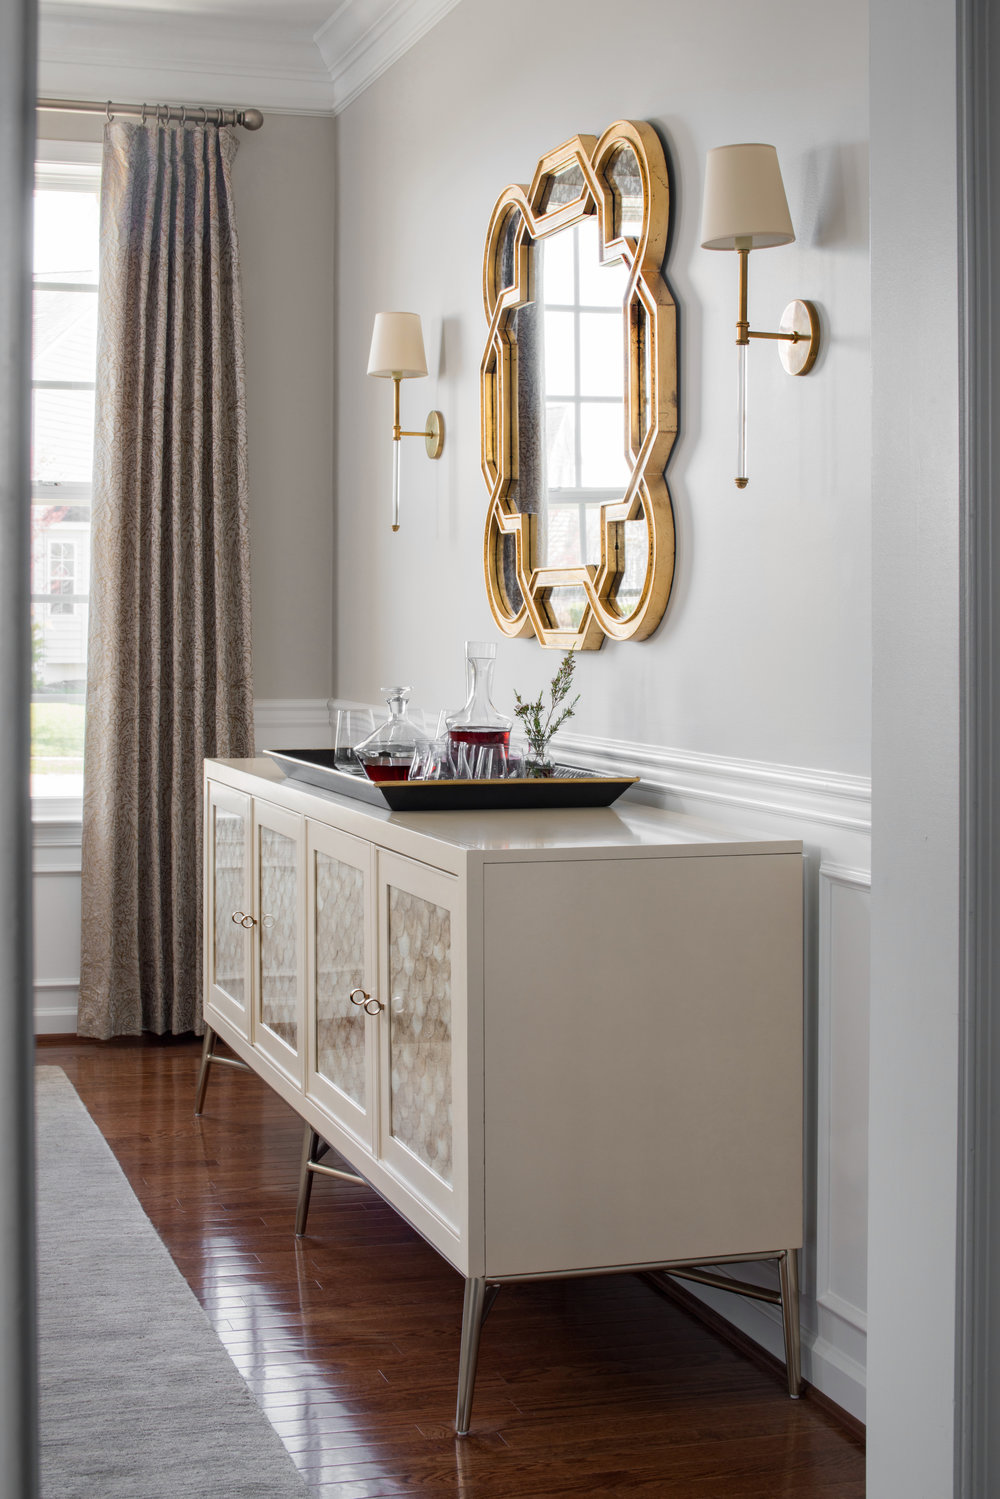 AbbyRoad-Mirror-Sconces.jpg